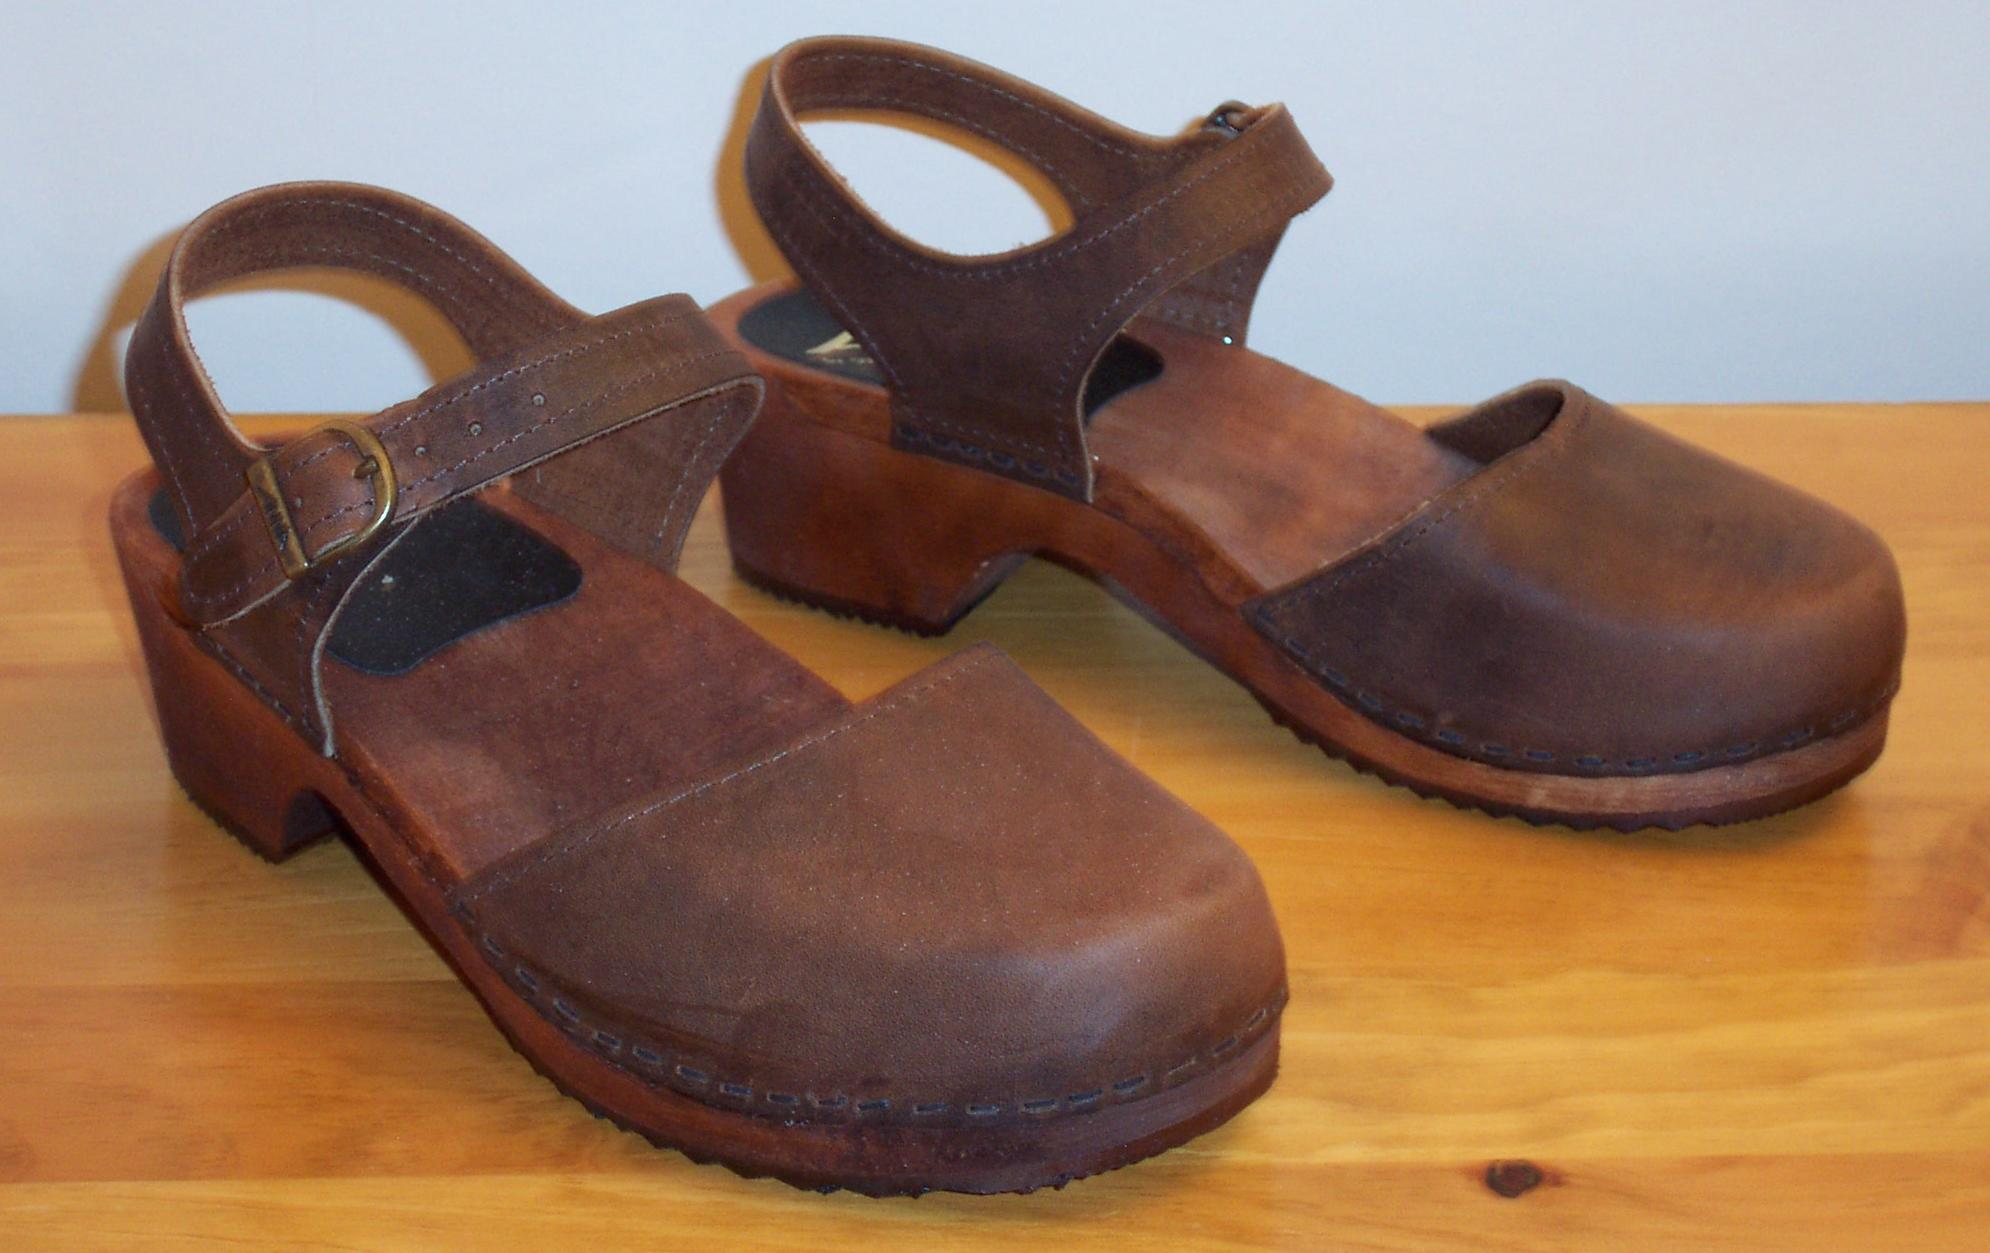 FileClogs With Wooden Sole And Leather Upper Mary Jane-style.jpg - Wikimedia Commons